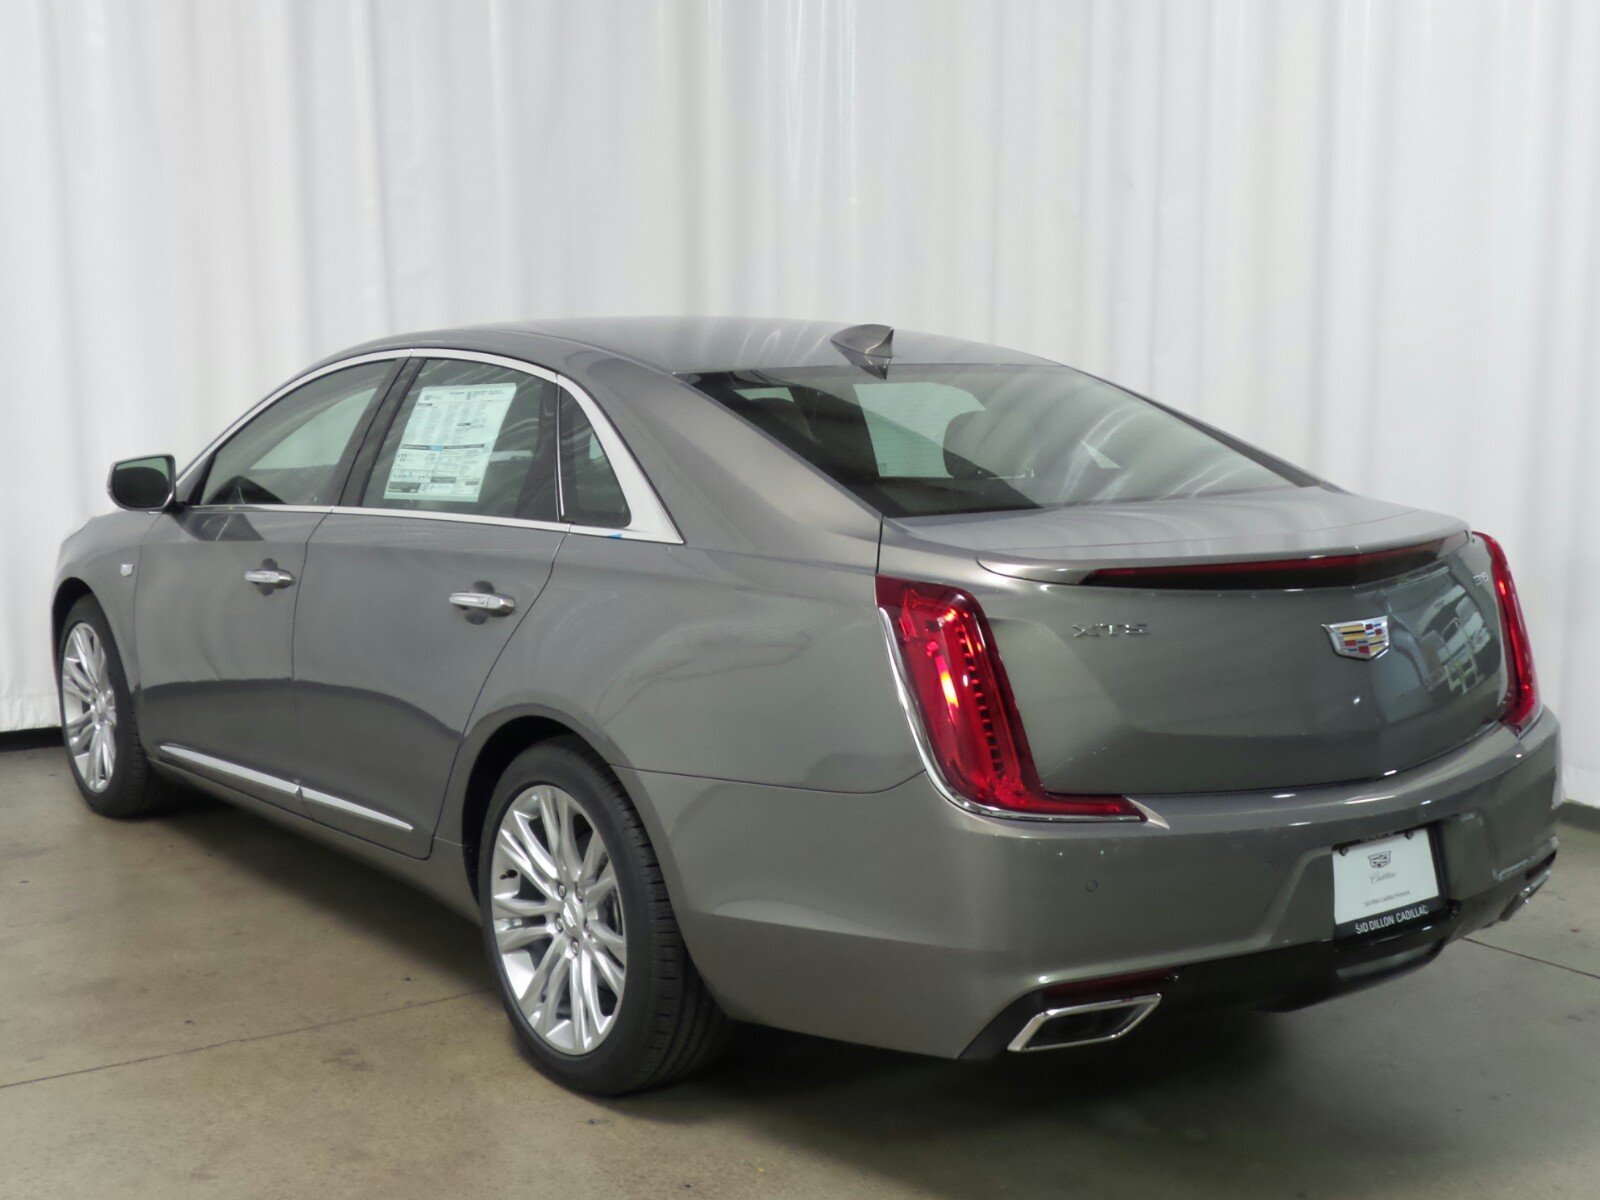 New 2018 Cadillac Xts Luxury 4 Door Sedan In Fremont